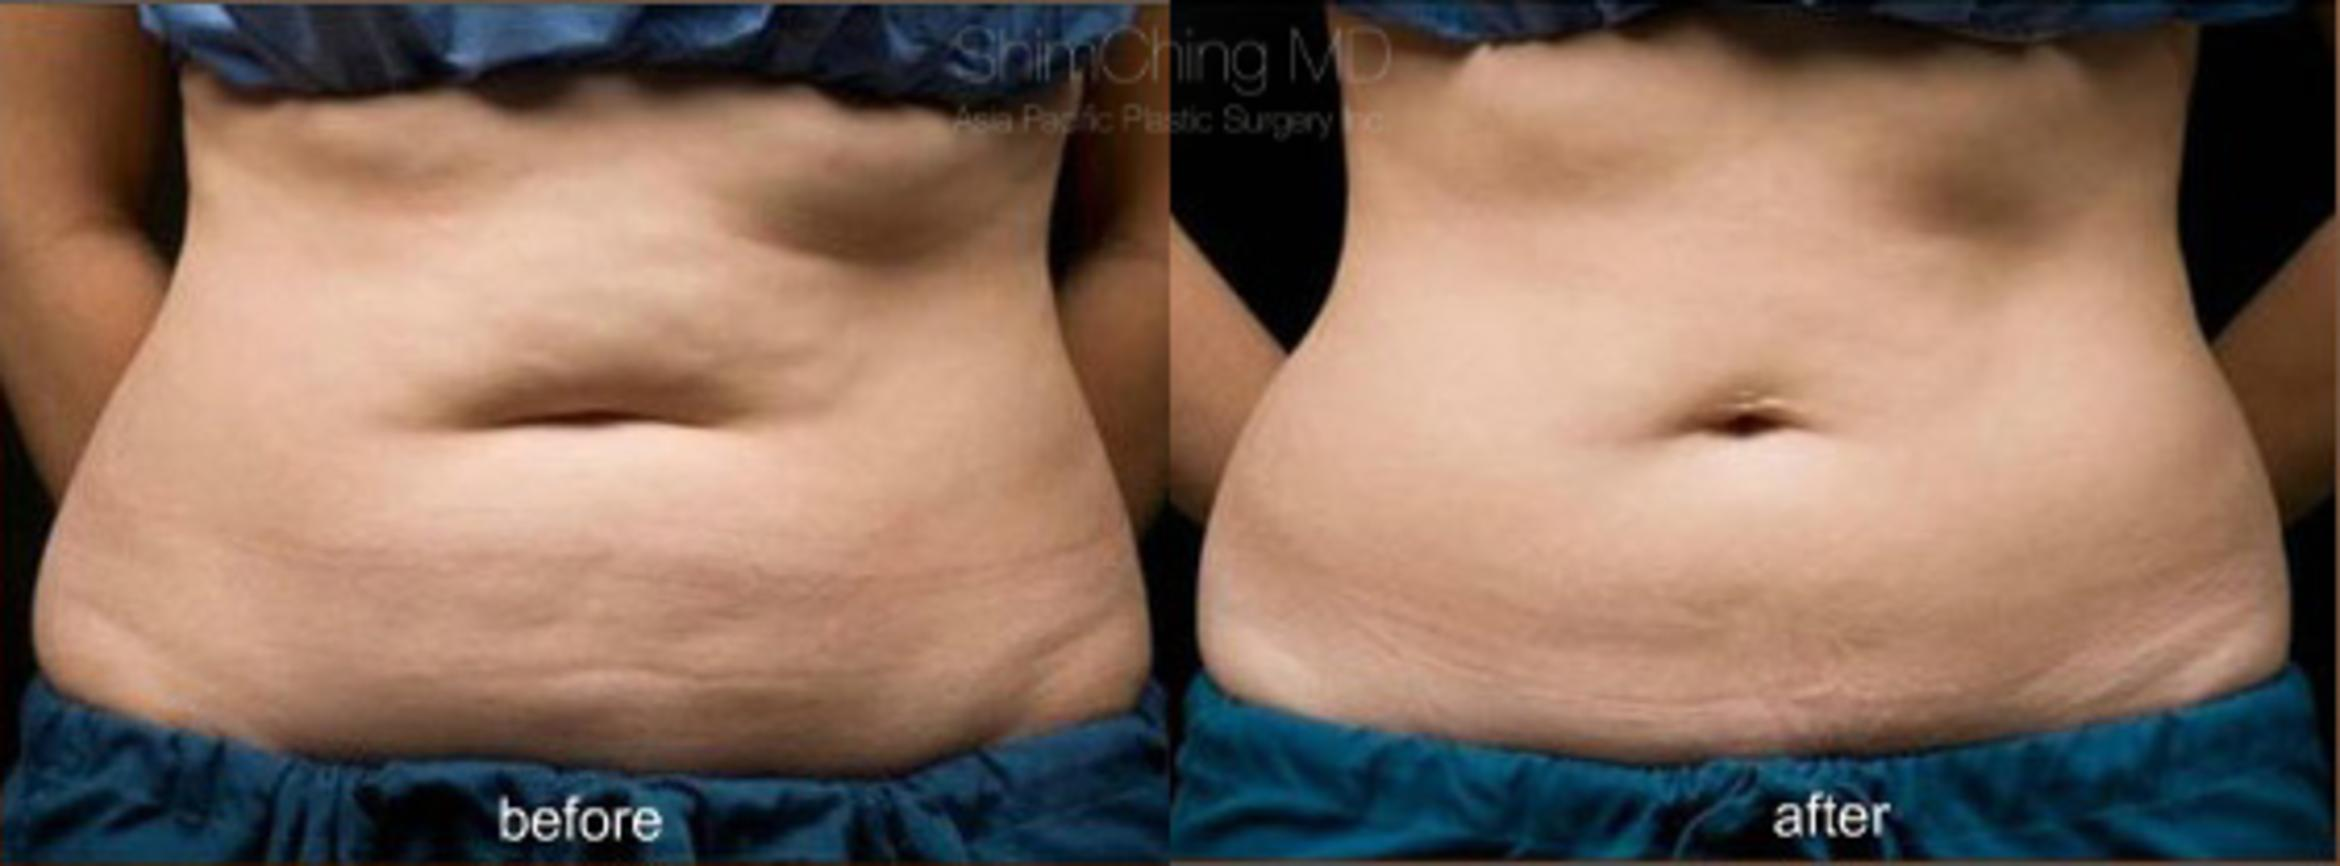 CoolSculpting Case 103 Before & After View #1 | Honolulu, HI | Shim Ching, MD: Asia Pacific Plastic Surgery